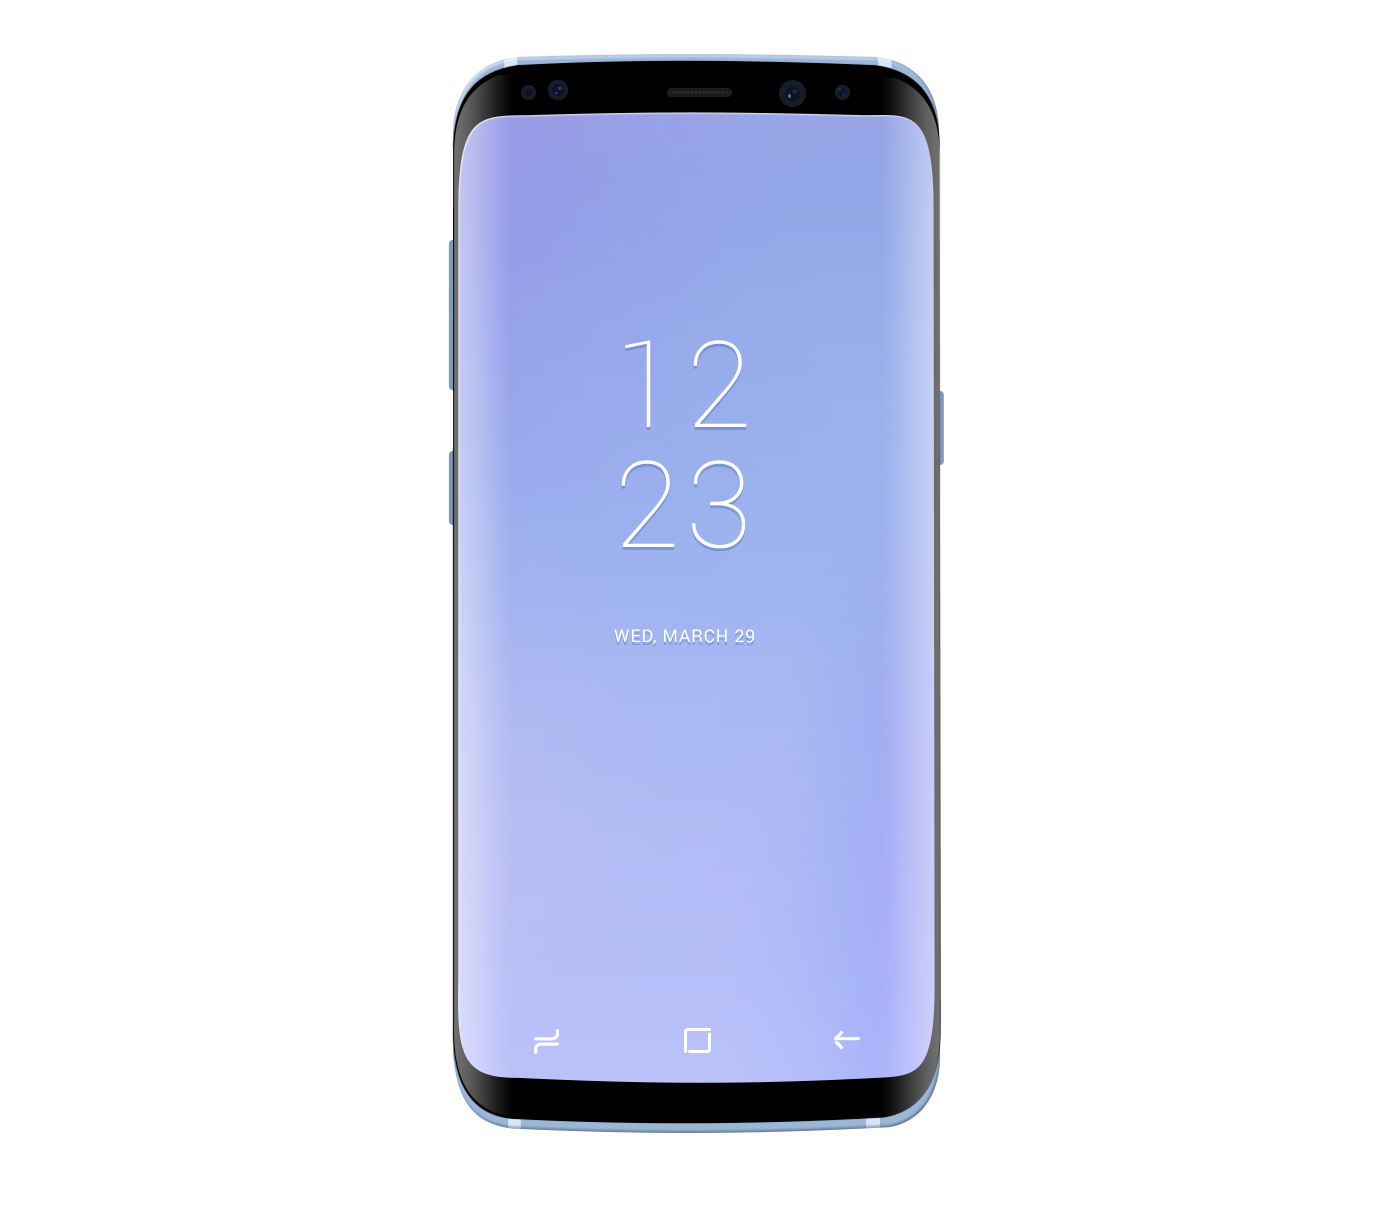 Samsung Galaxy S8 Coral Blue Mockup for Photoshop